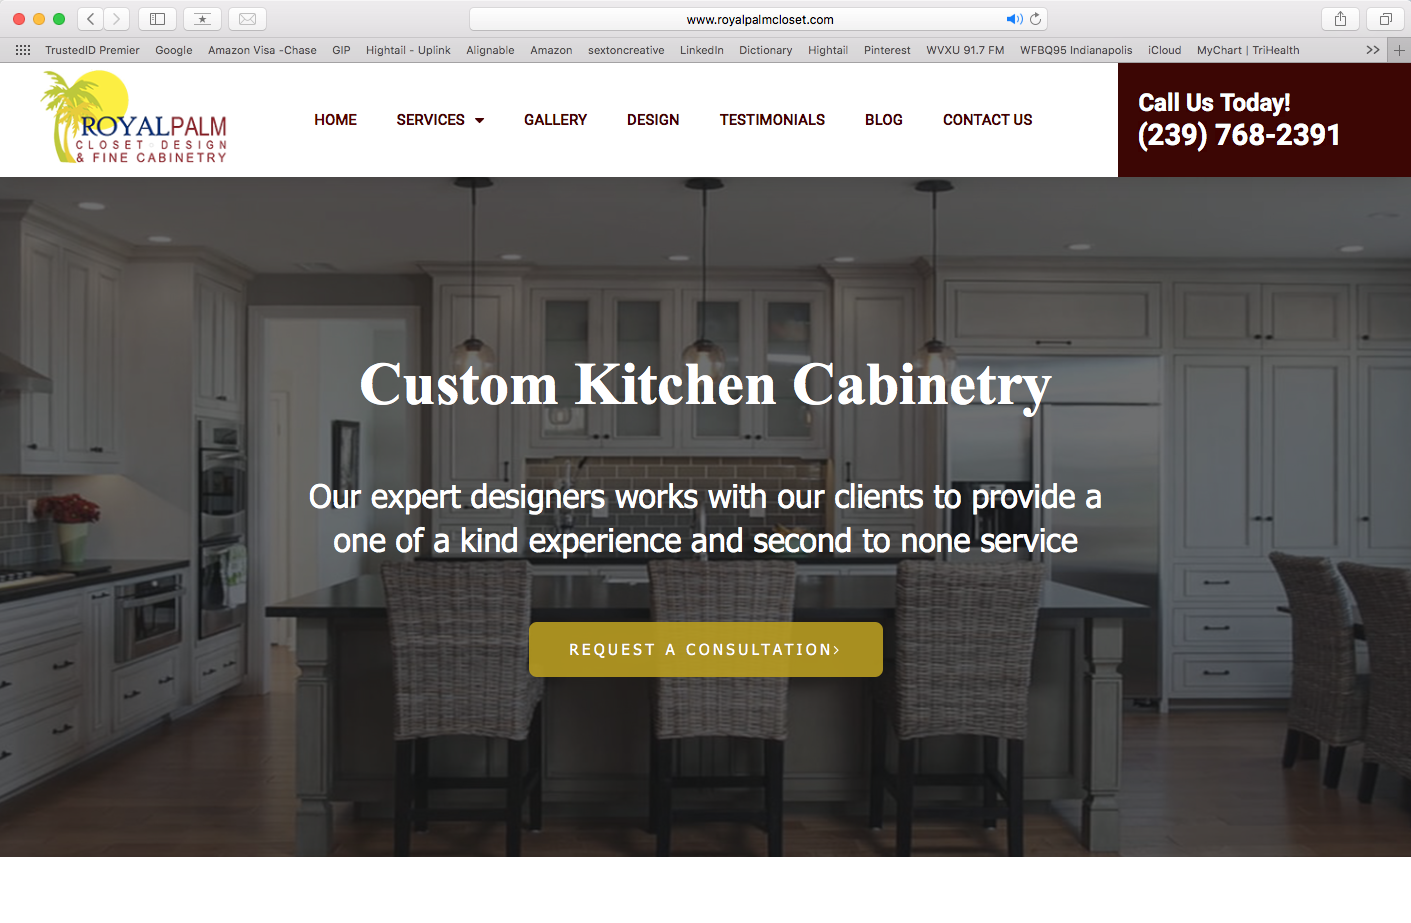 Royal Palm - Custom Cabinetry (website redesign, SEO)